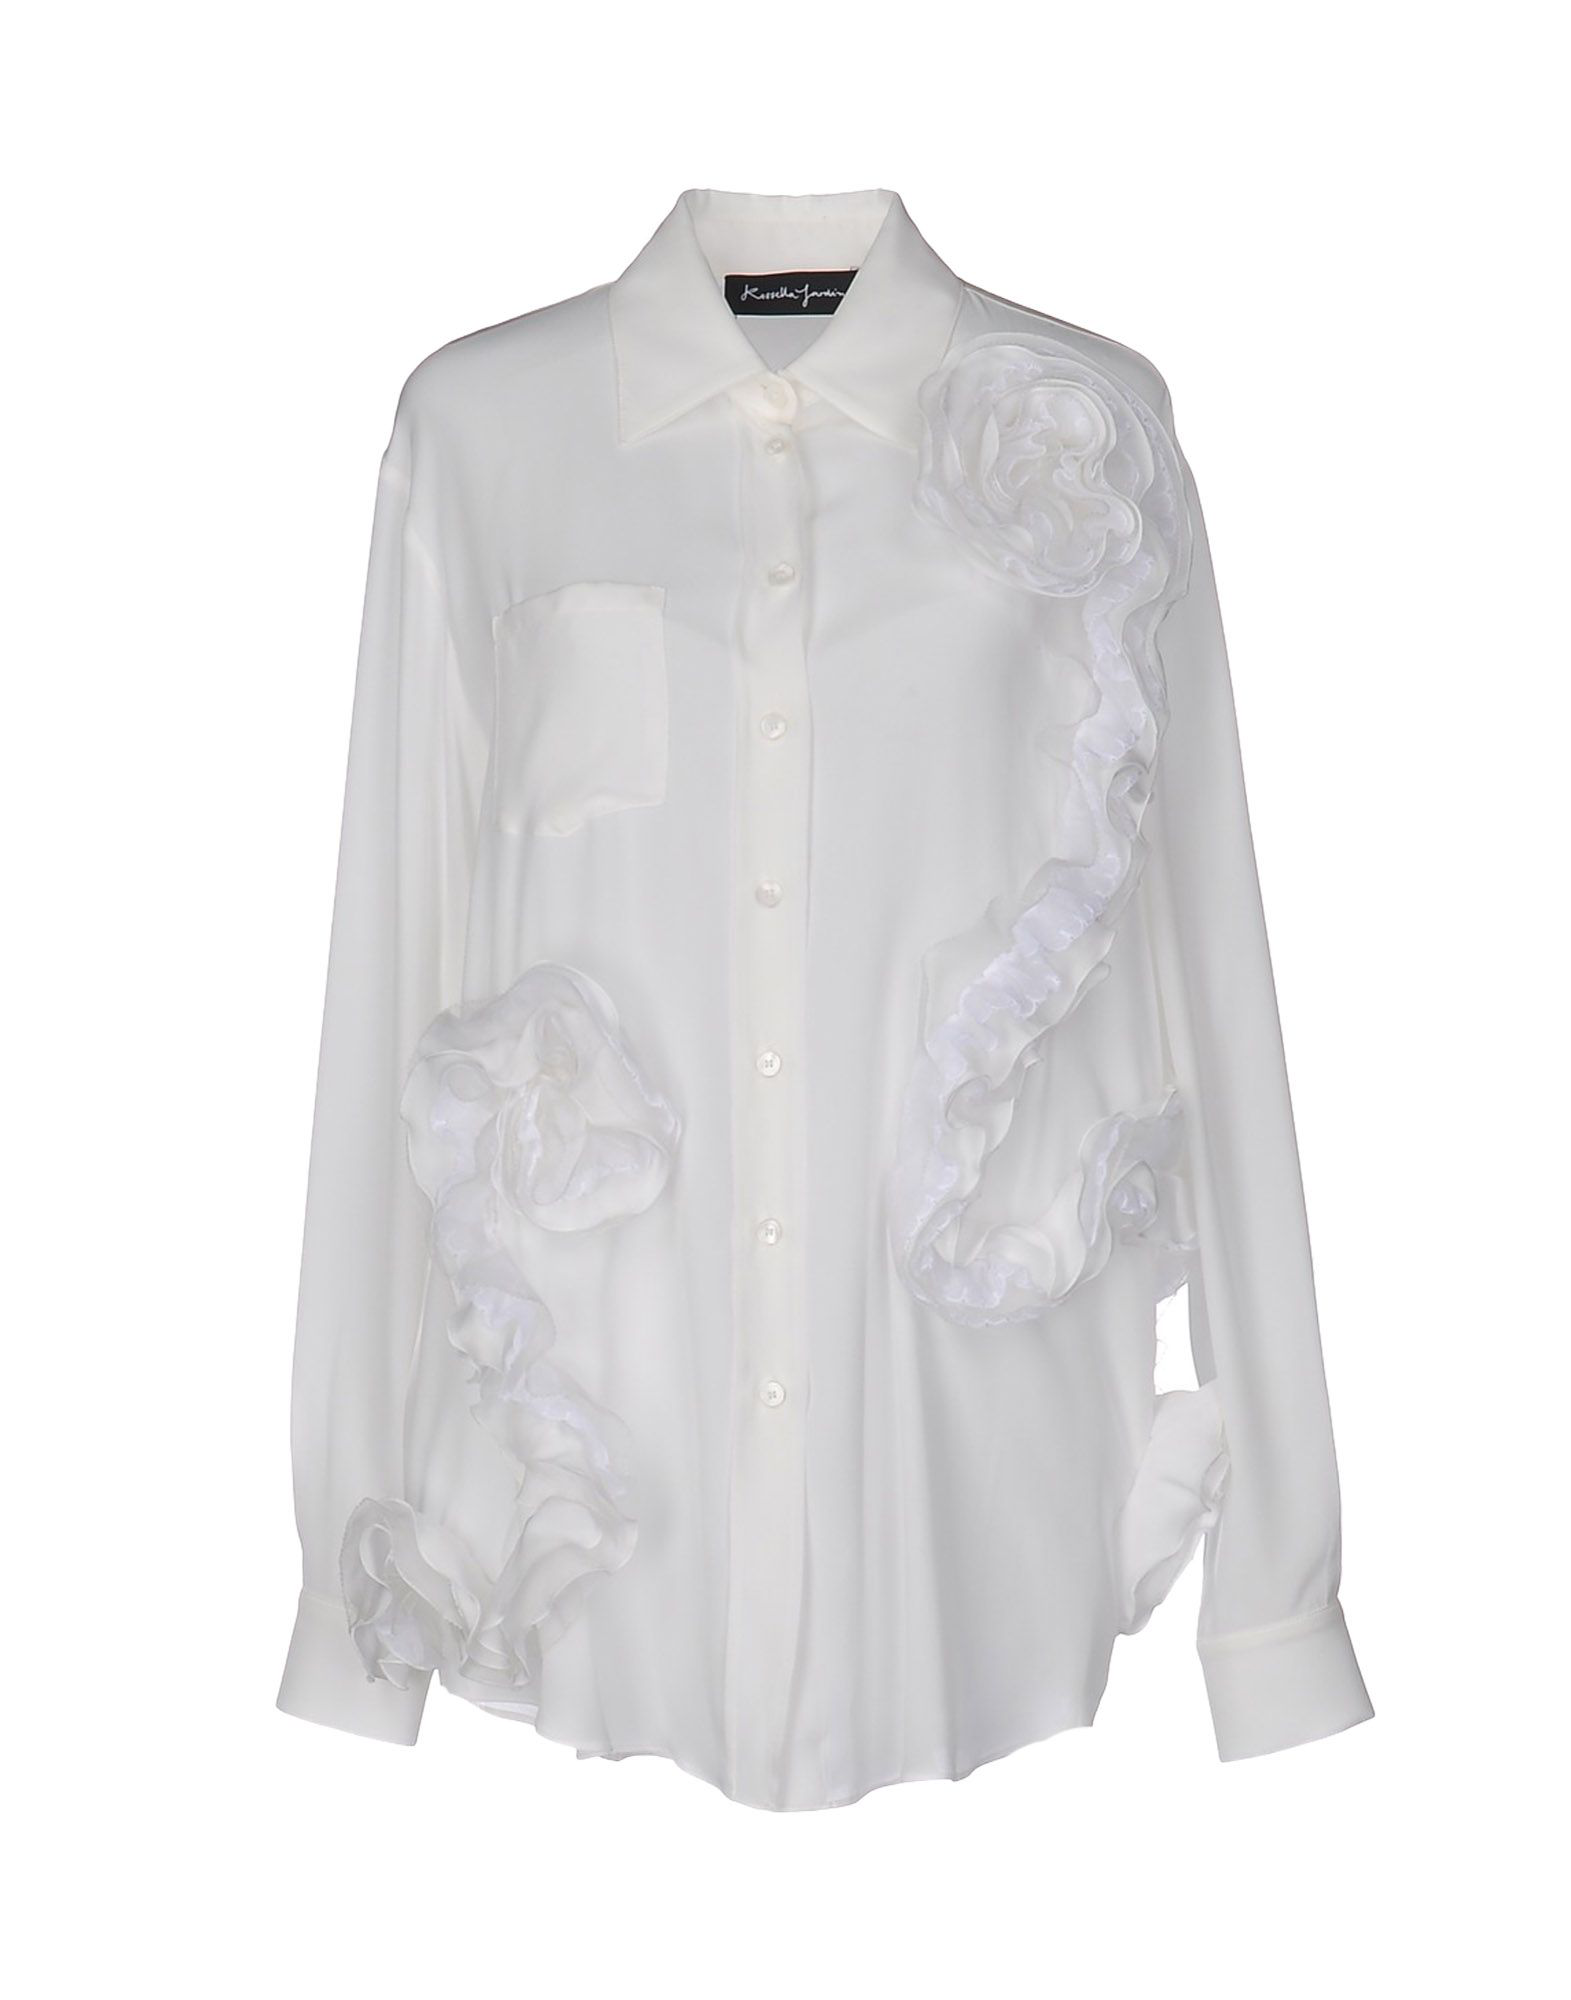 Rossella Jardini Silk Shirts & Blouses In White